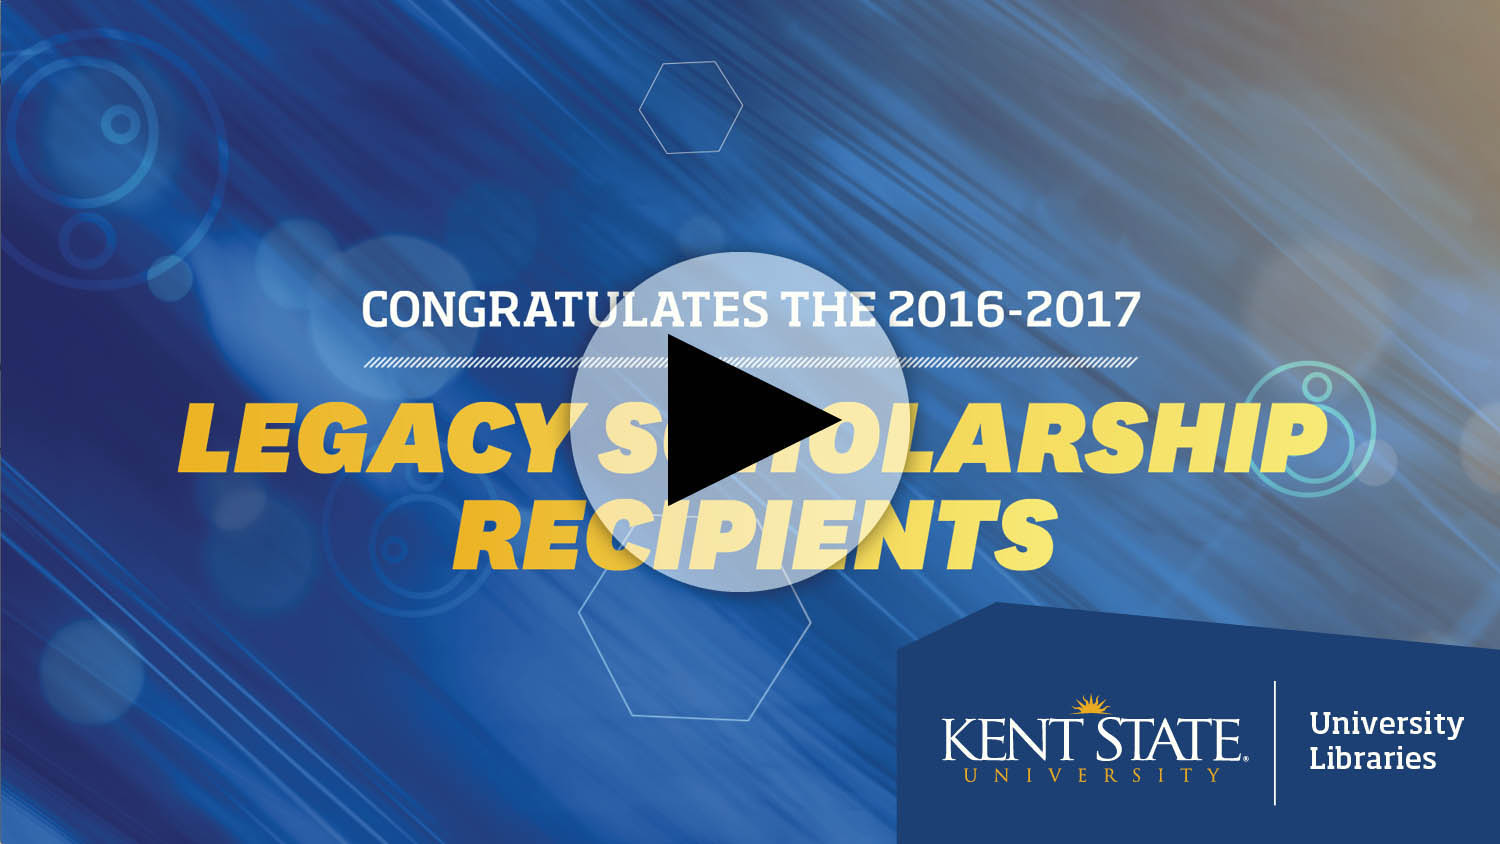 The 2016-2017 Legacy Scholarship Recipients